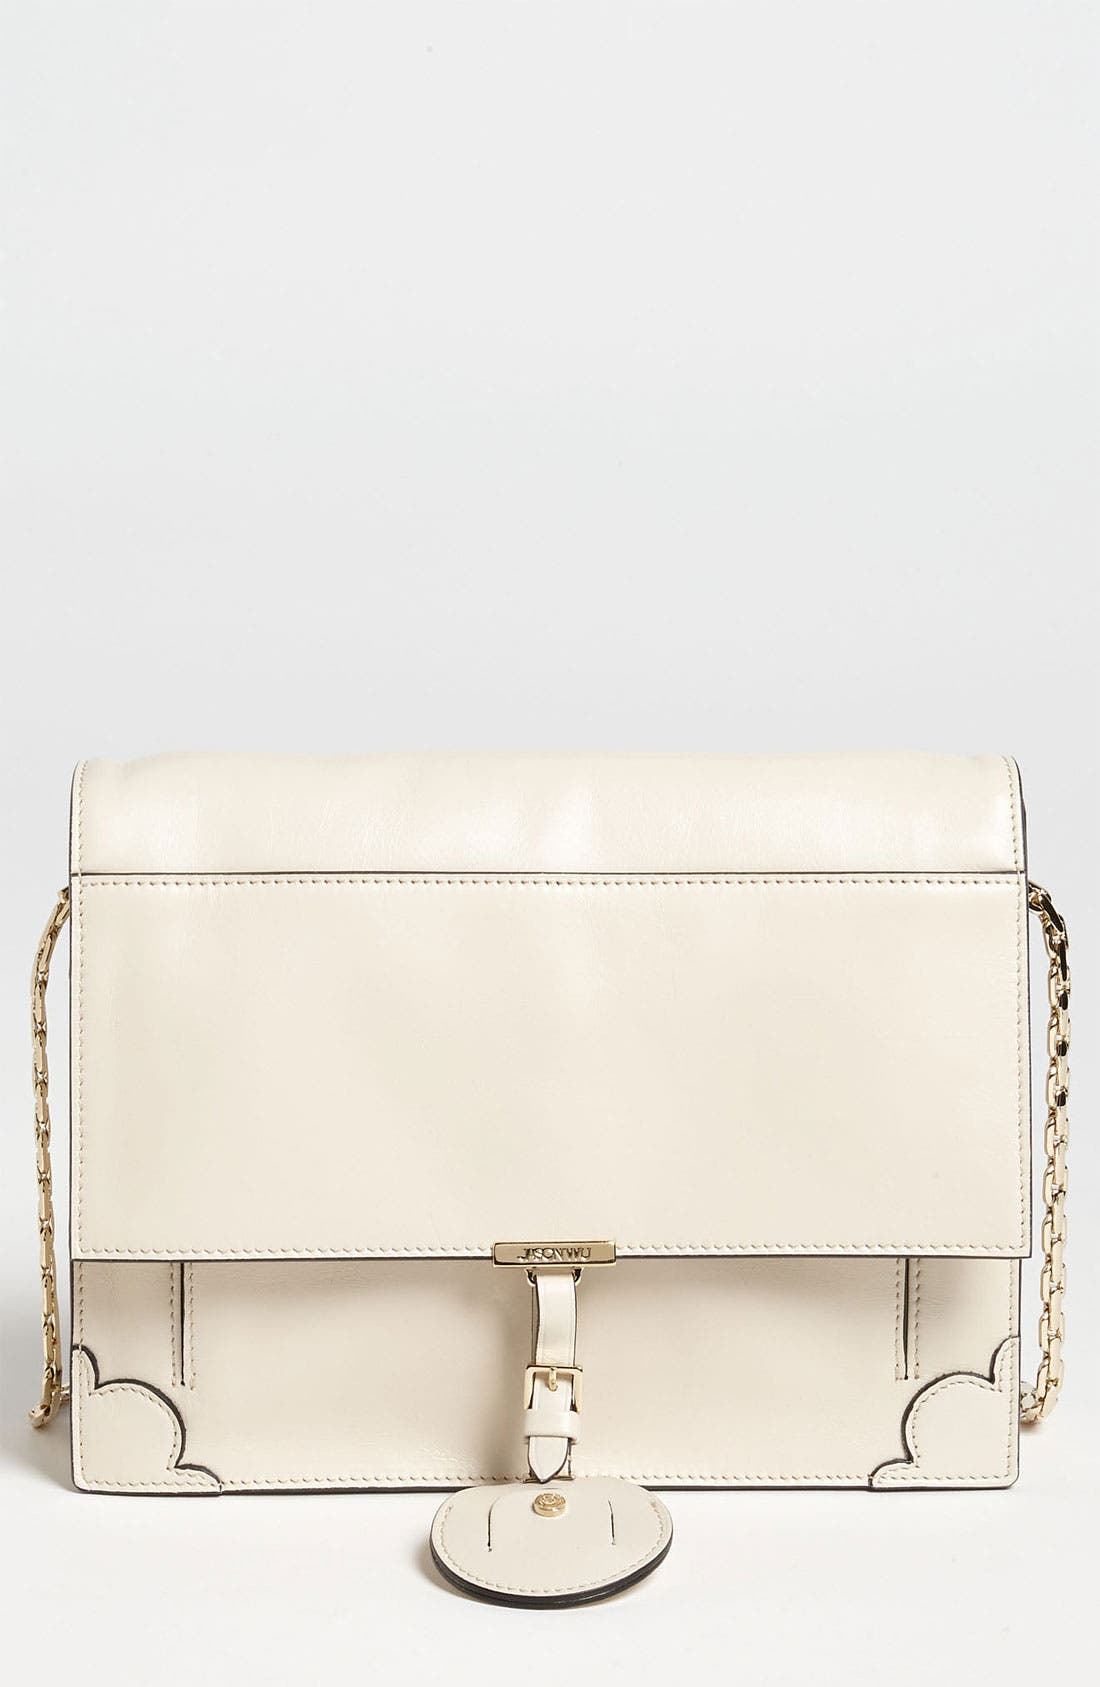 Alternate Image 1 Selected - Jason Wu 'Jourdan' Leather Crossbody Bag